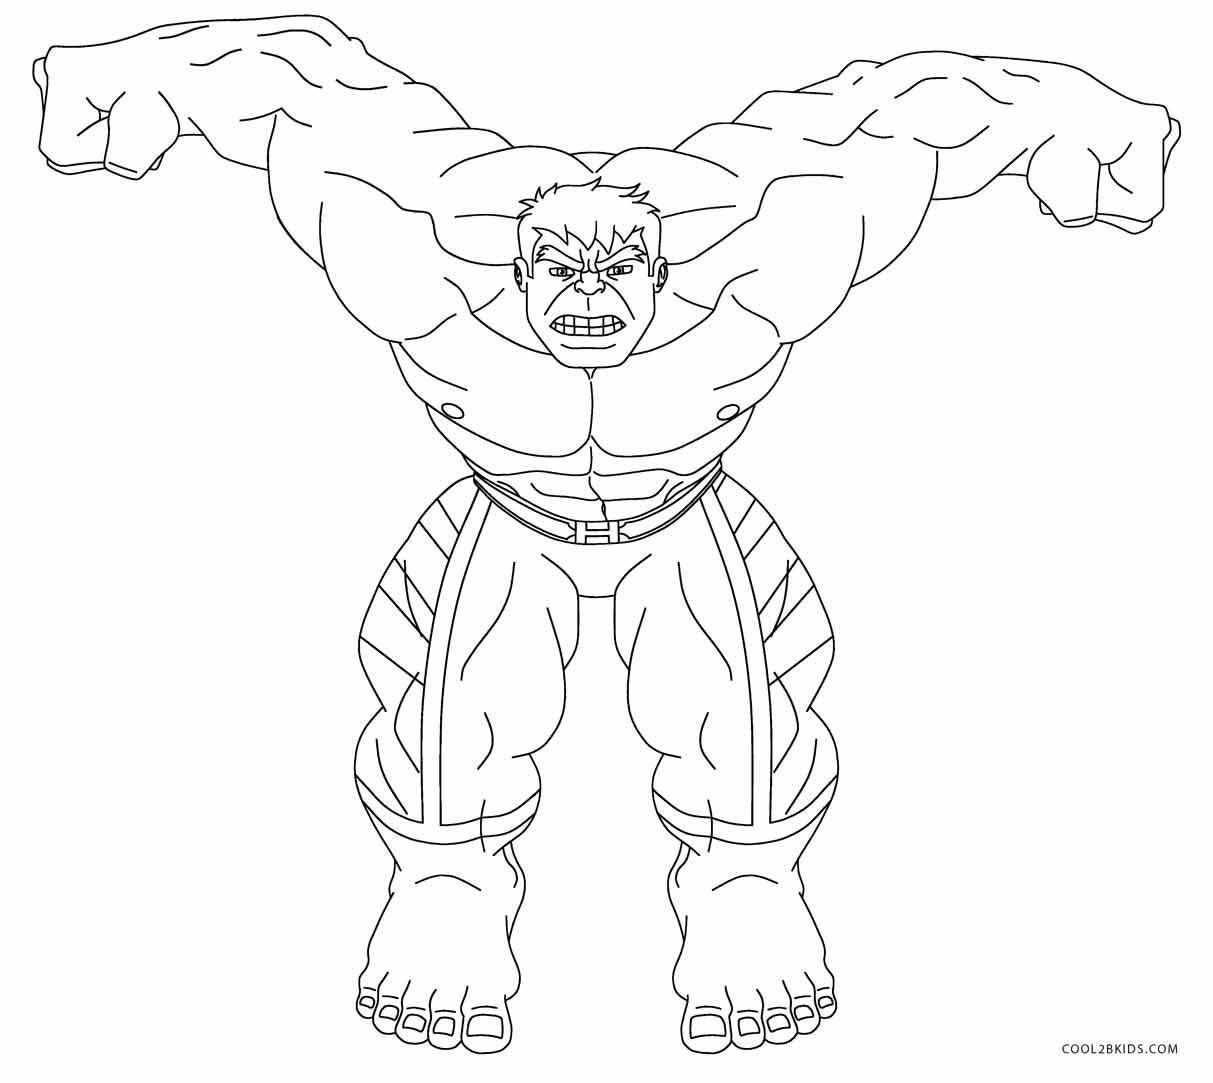 hulk coloring pages - photo #42